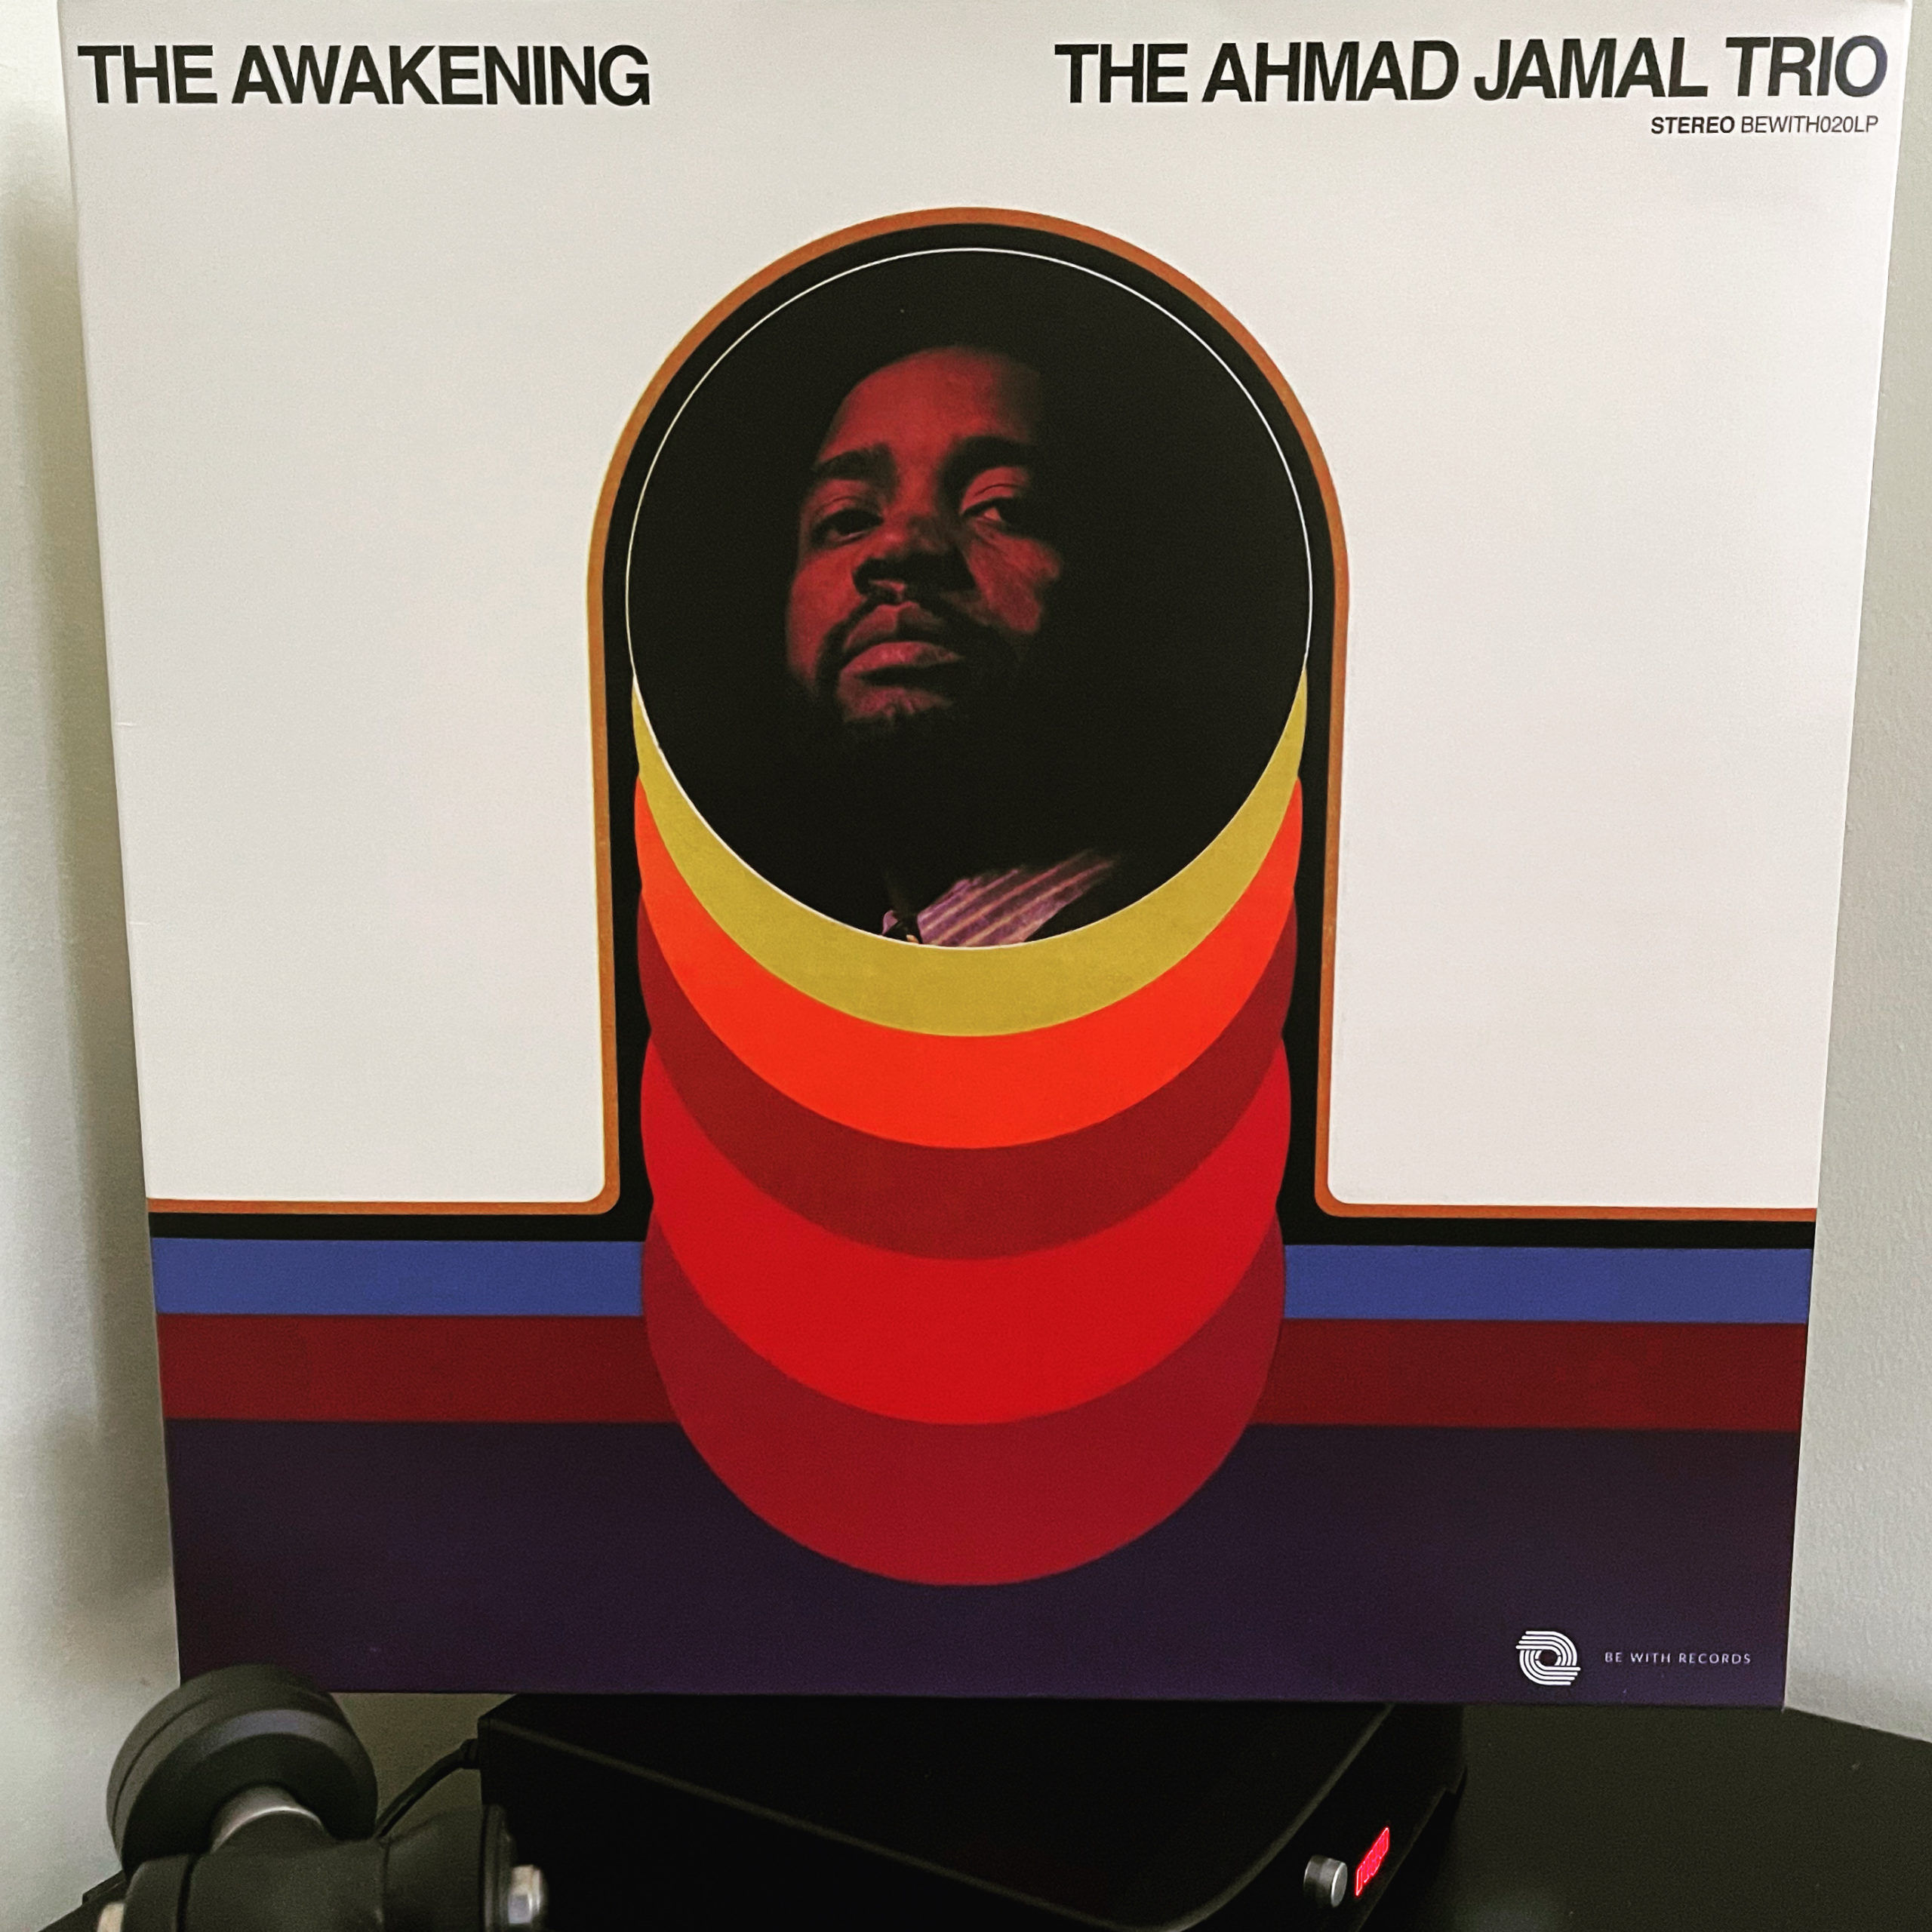 Ahmad Jamal The Awakening